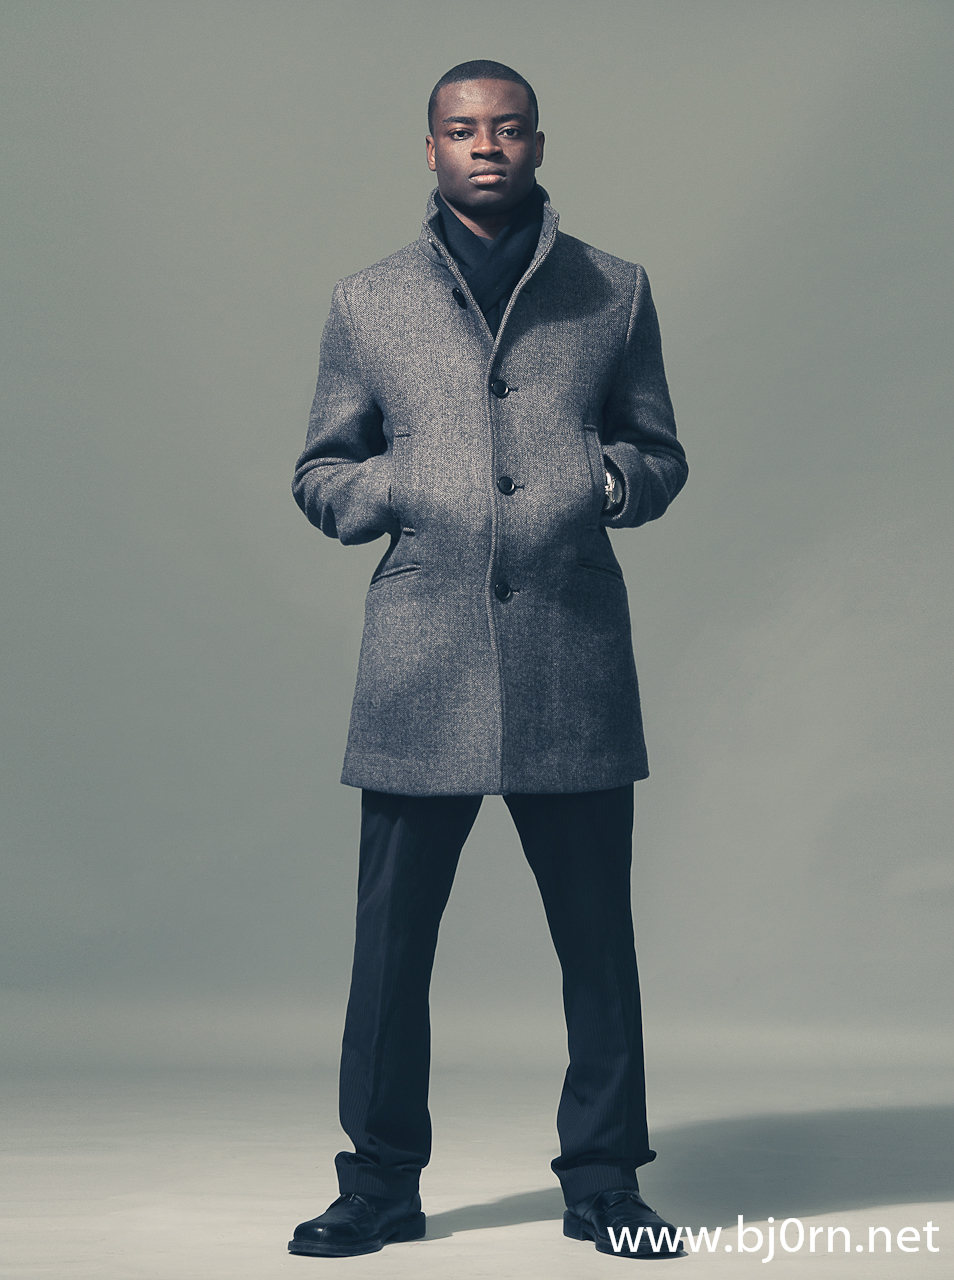 photo: Bjørn Christiansen, model: Kofi Gyimah